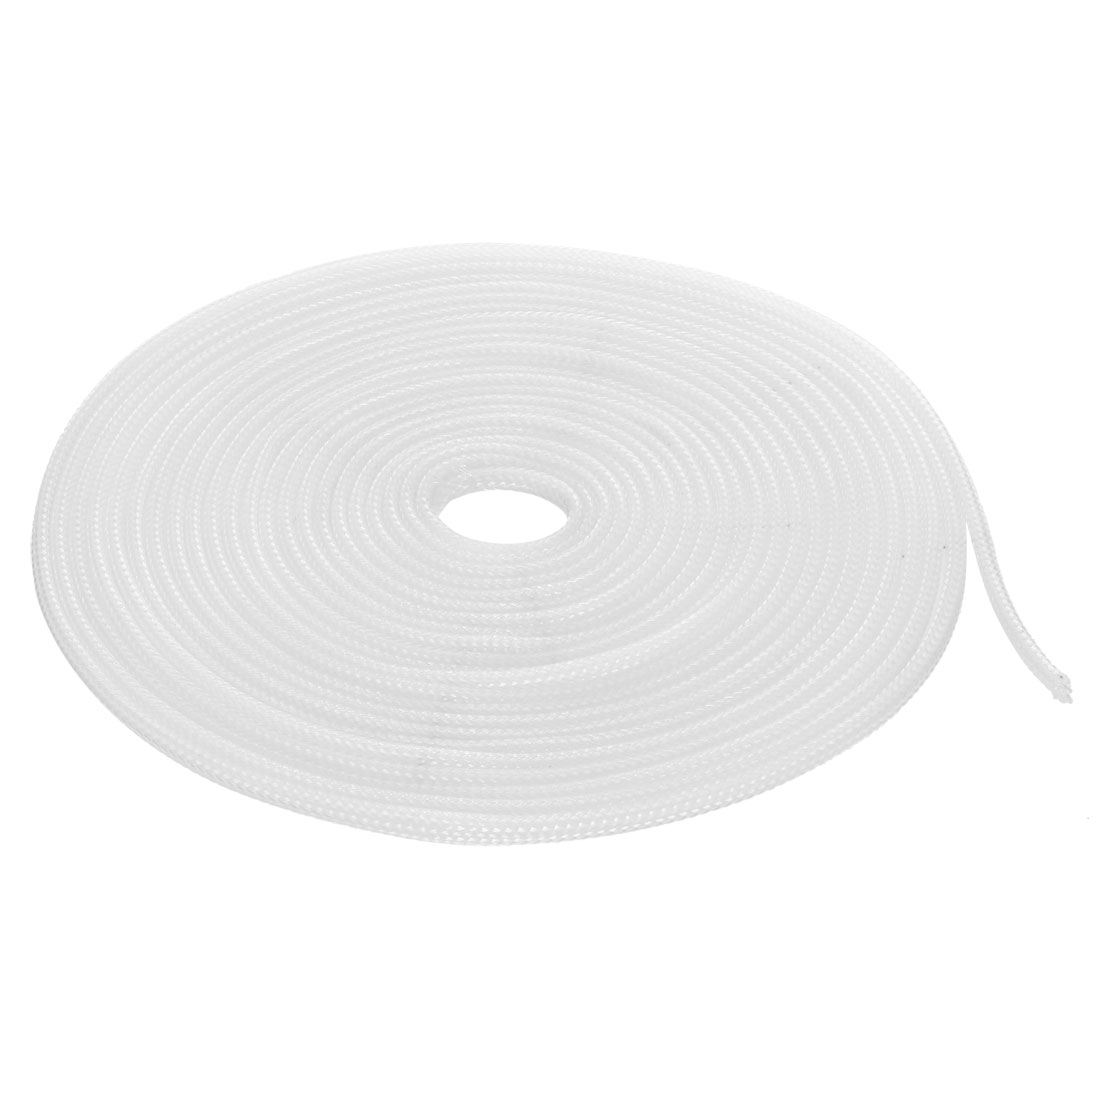 4mm Flat Dia Tight Braided PET Expandable Sleeving Cable Wrap Sheath White 5M